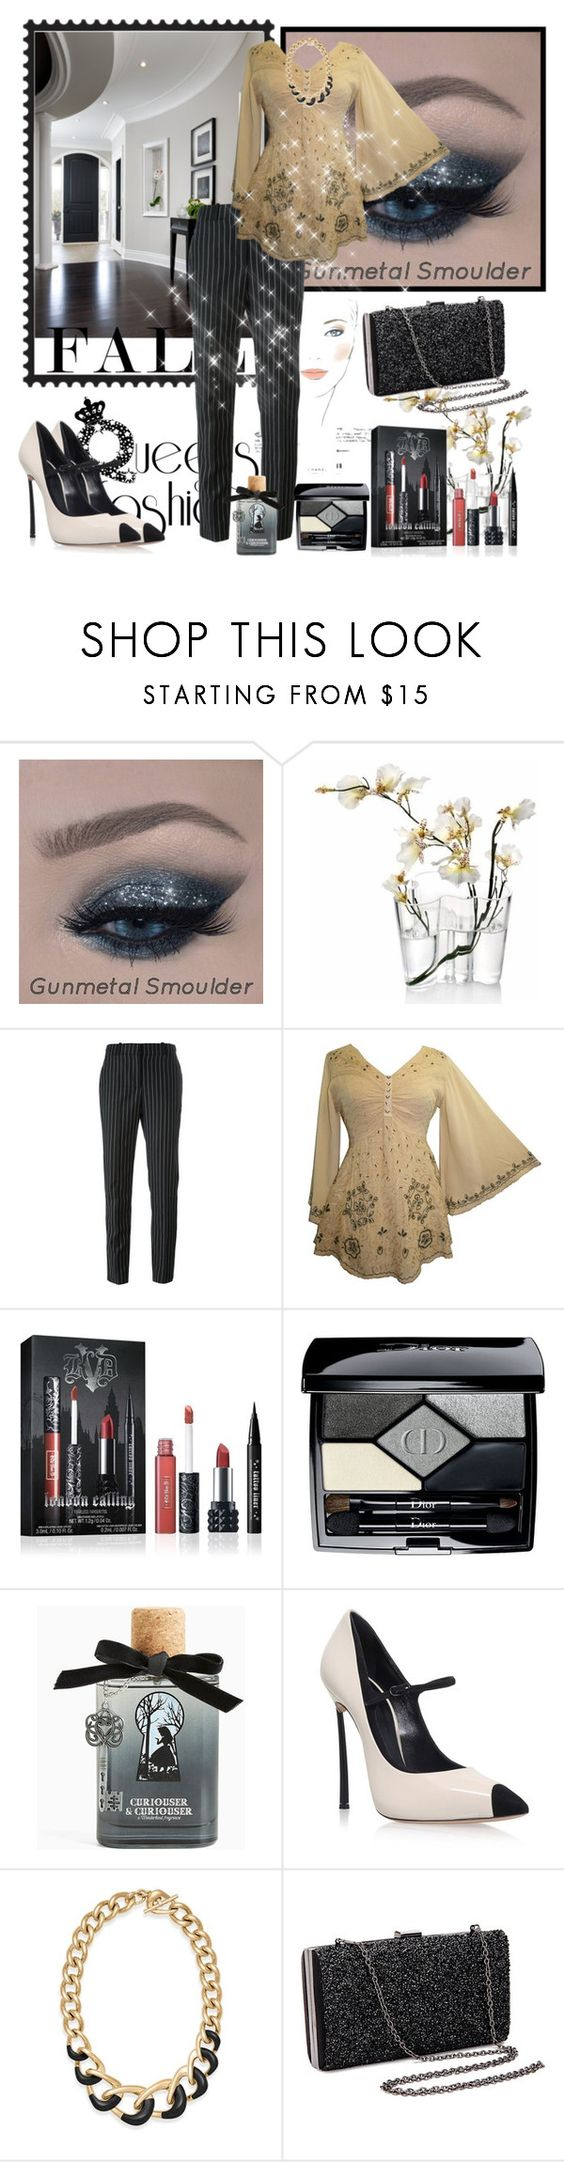 """""""Untitled #959"""" by misaflowers ❤ liked on Polyvore featuring Chanel, iittala, Givenchy, Kat Von D, Christian Dior, Torrid, Casadei and Michael Kors"""